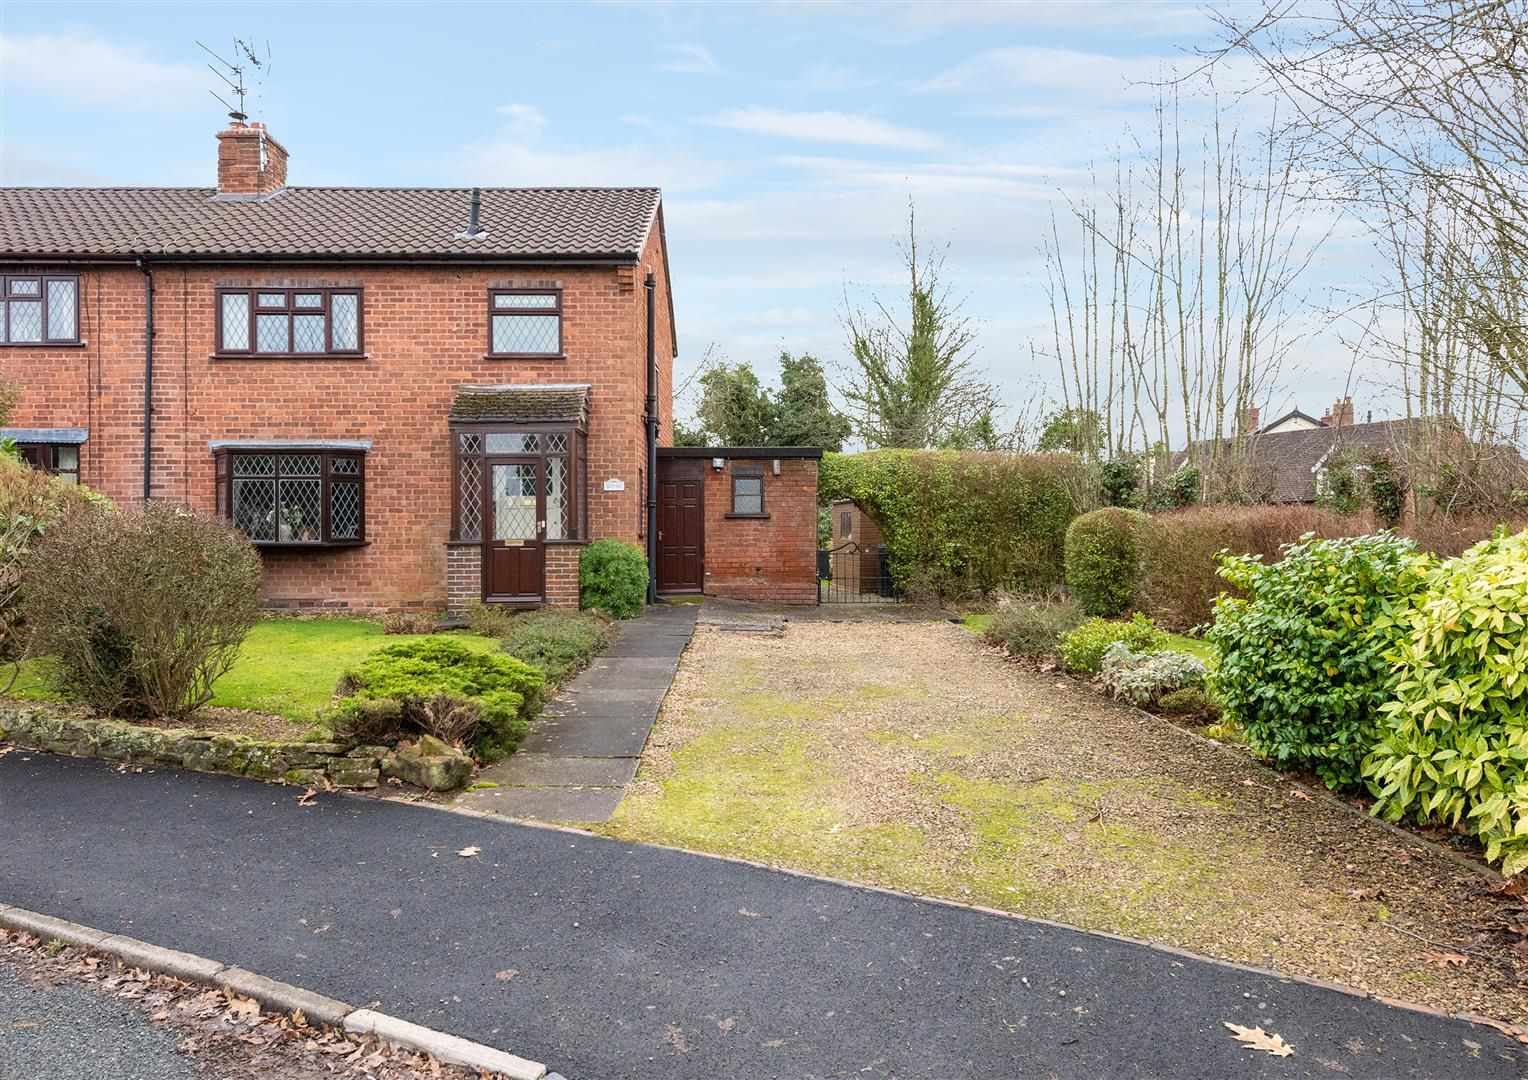 3 bed house for sale in Belbroughton 19